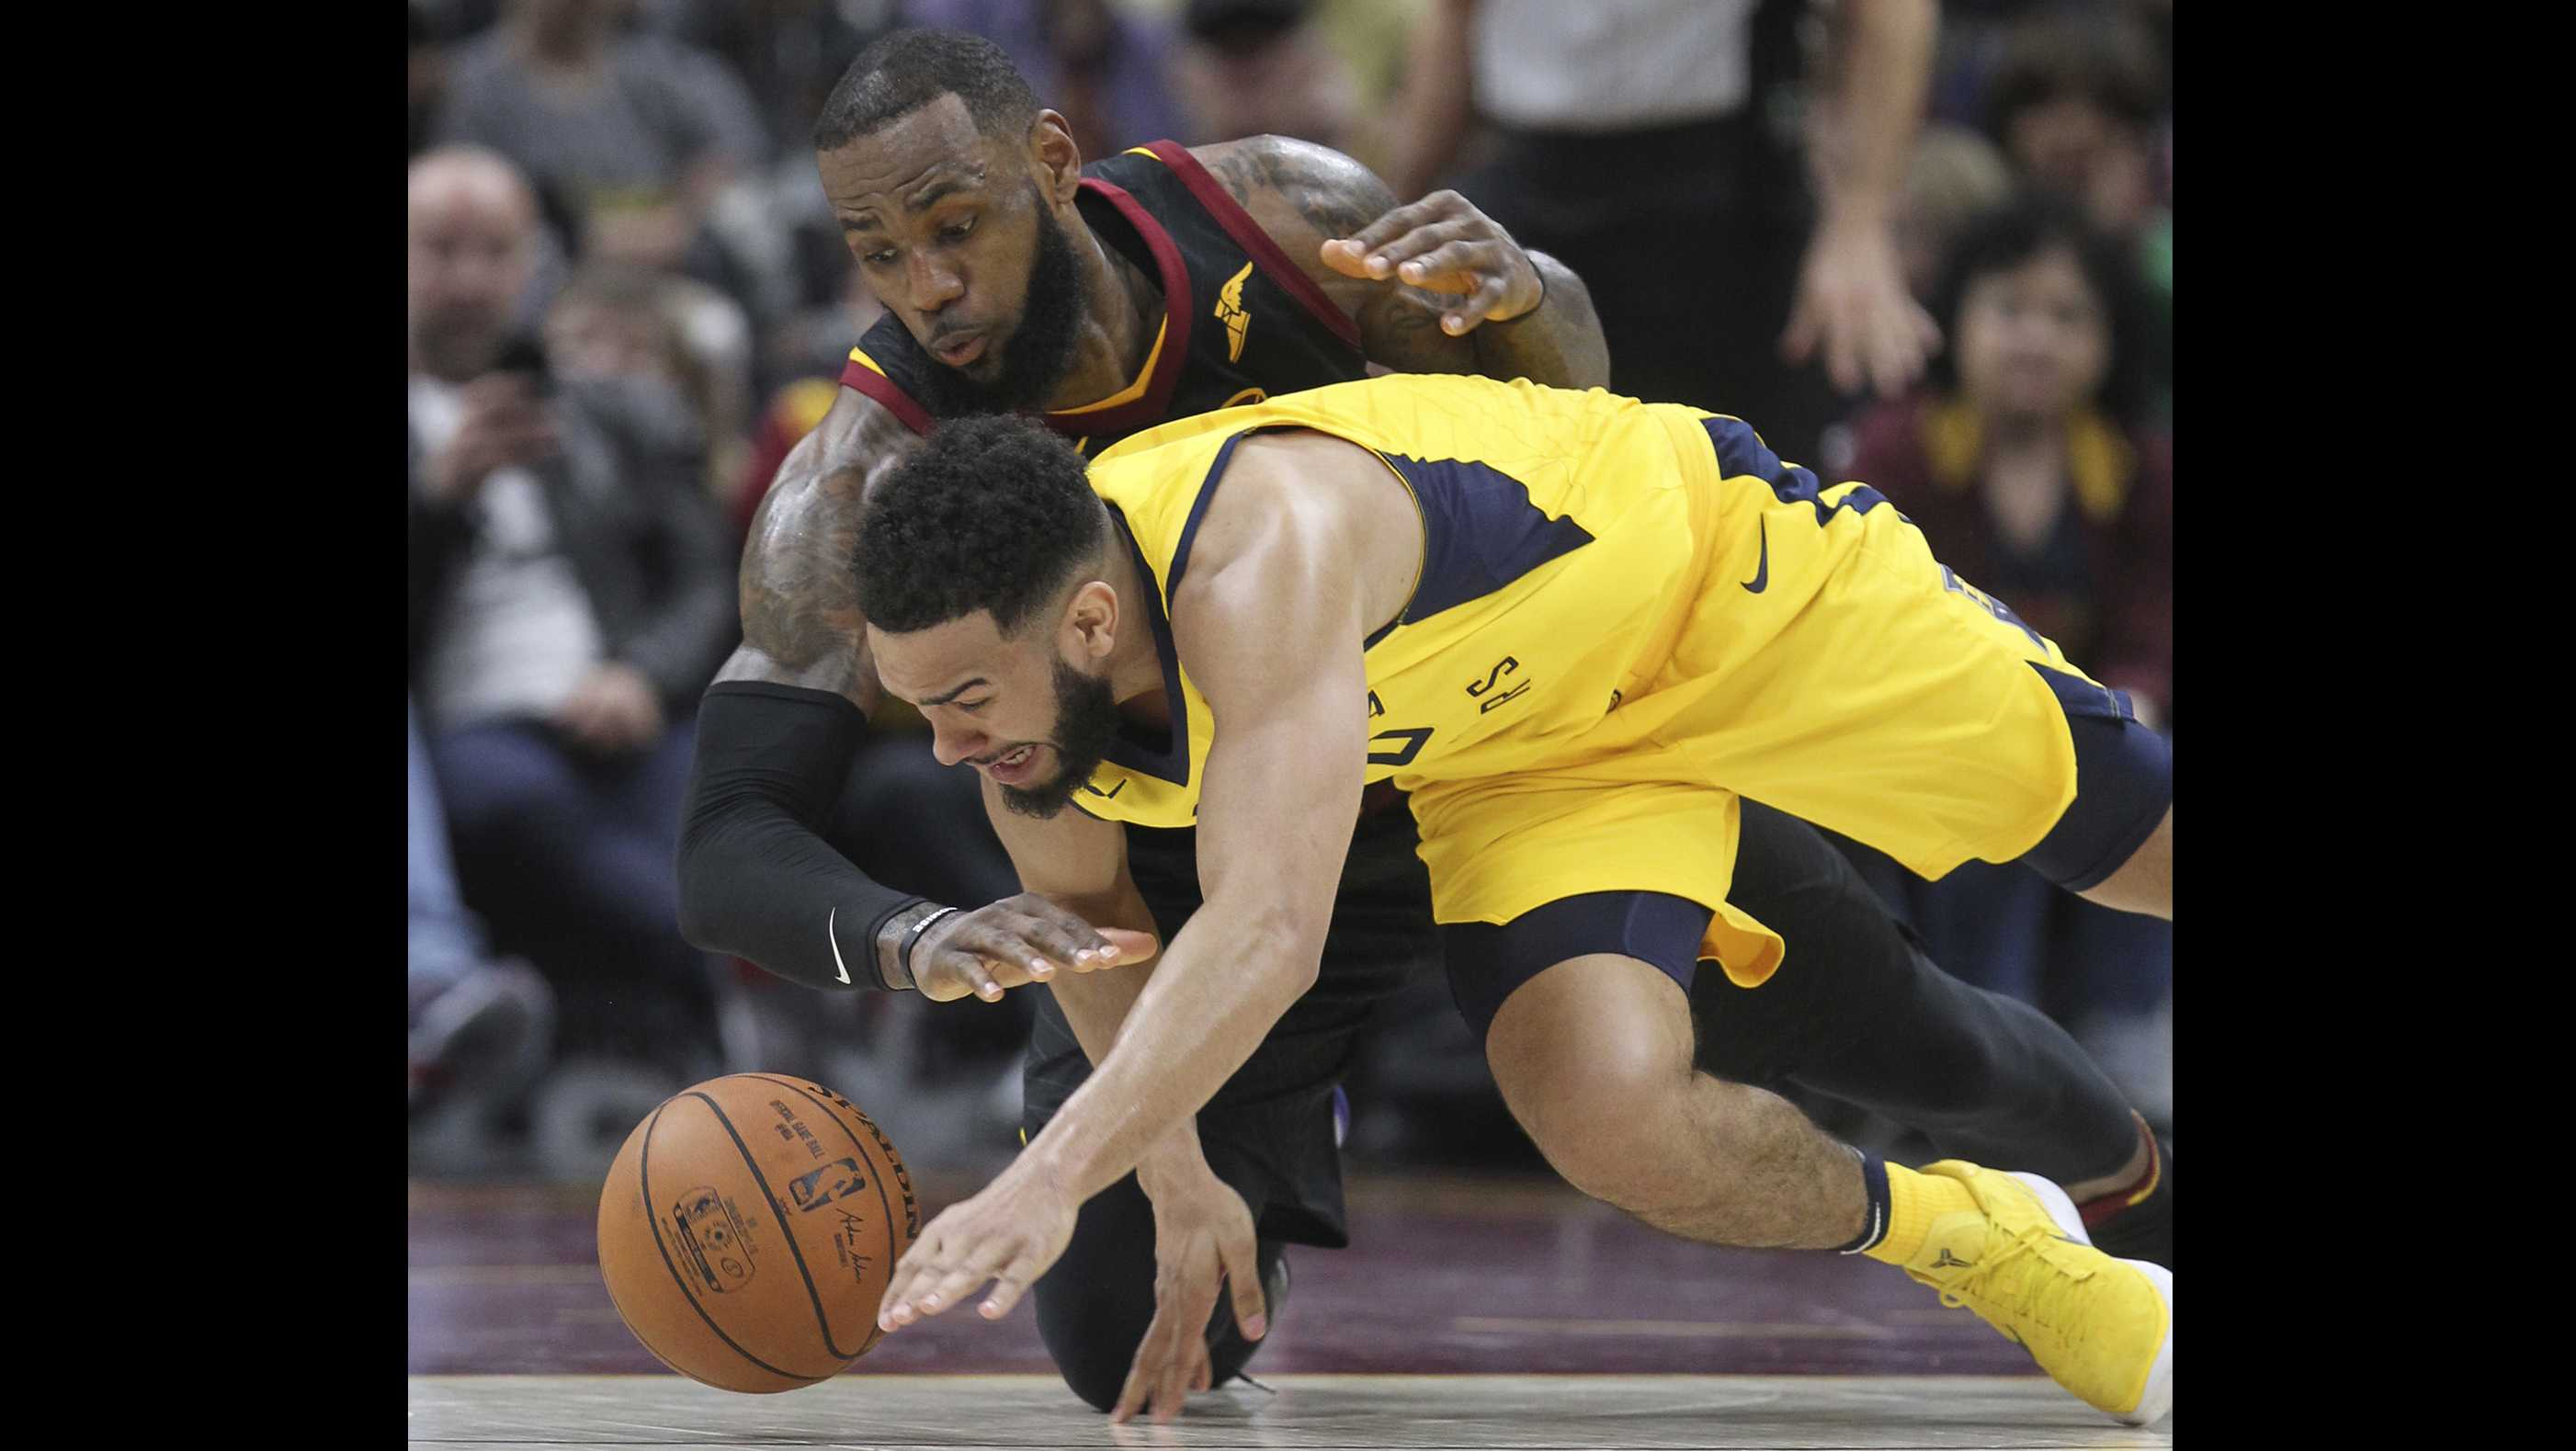 Cleveland Cavaliers' LeBron James and Indiana Pacers' Cory Joseph go after a fourth quarter lose ball in an Eastern Conference first round game on Sunday, April 15, 2018 at Quicken Loans Arena in Cleveland, Ohio. The Cavs lost the game, 98-80. (Phil Masturzo/Akron Beacon Journal/TNS)